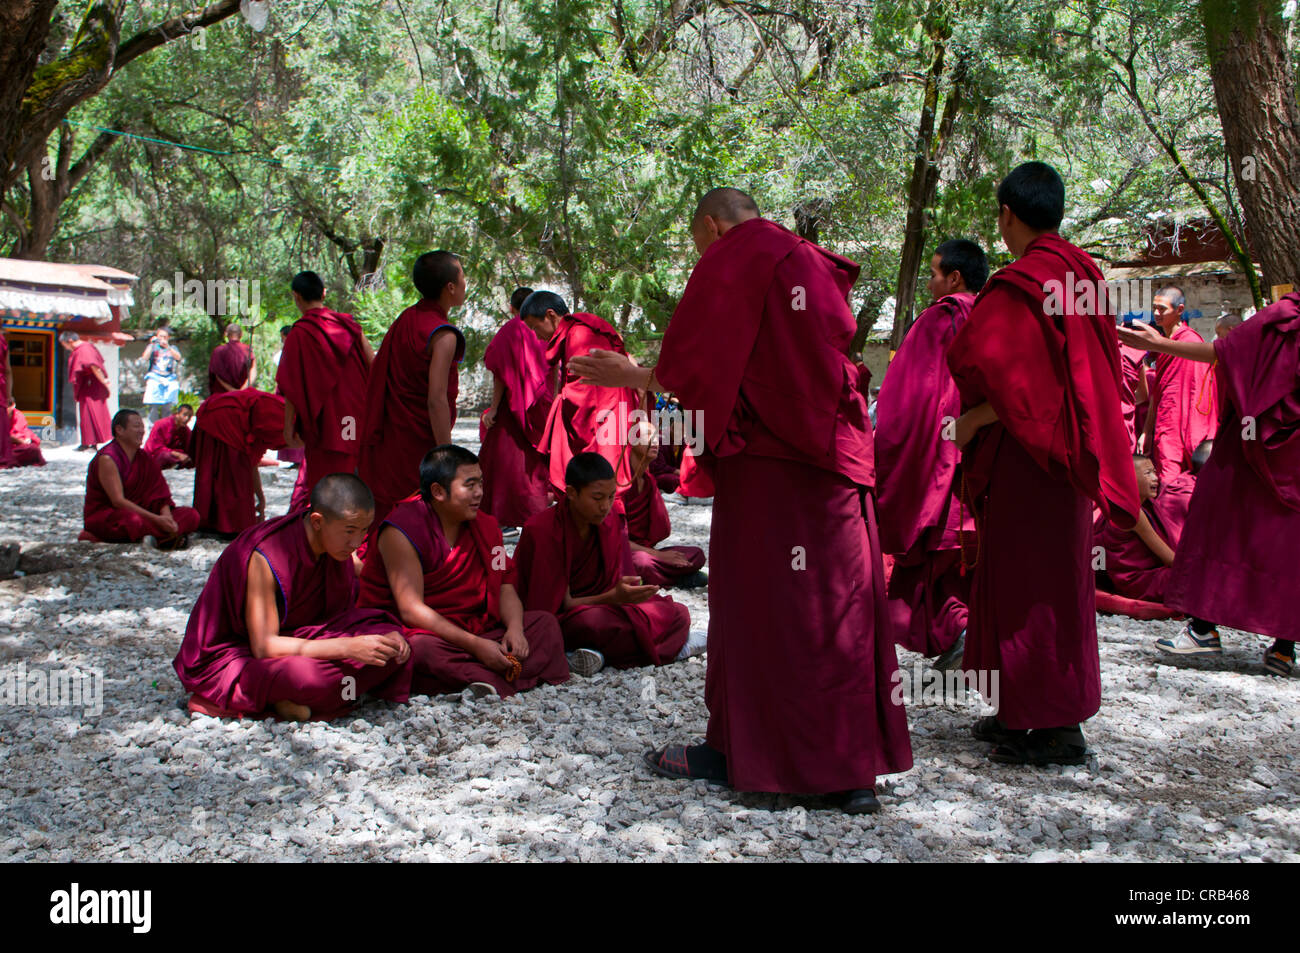 Young monks during their daily discussion round in Saga Temple, Lhasa, Tibet, Asia - Stock Image